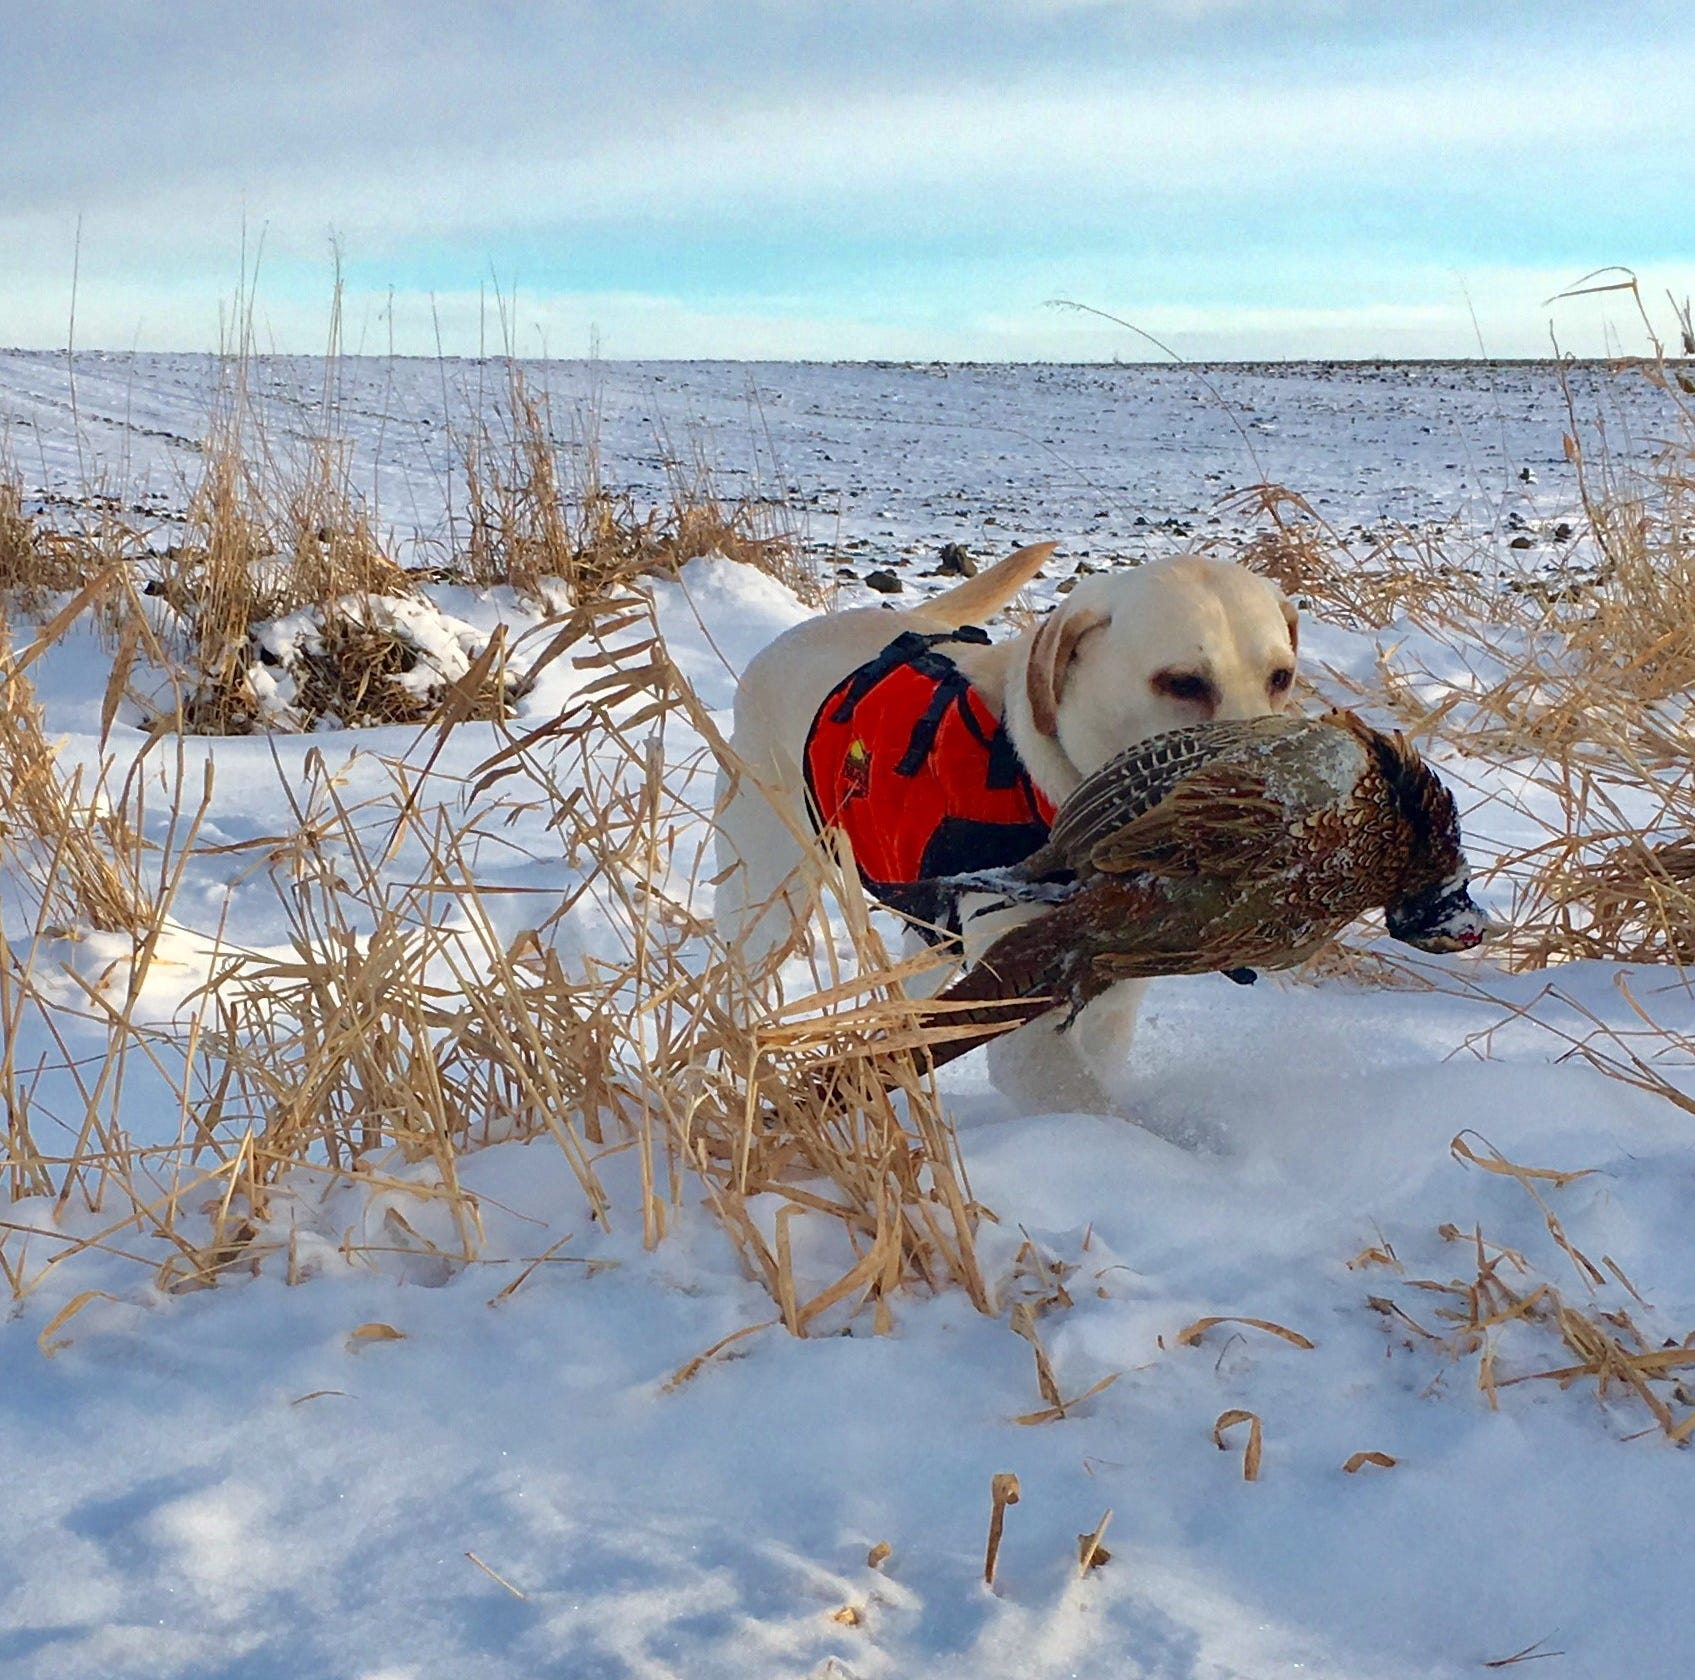 Pollmann: Finding pheasants is a good way to beat the cold